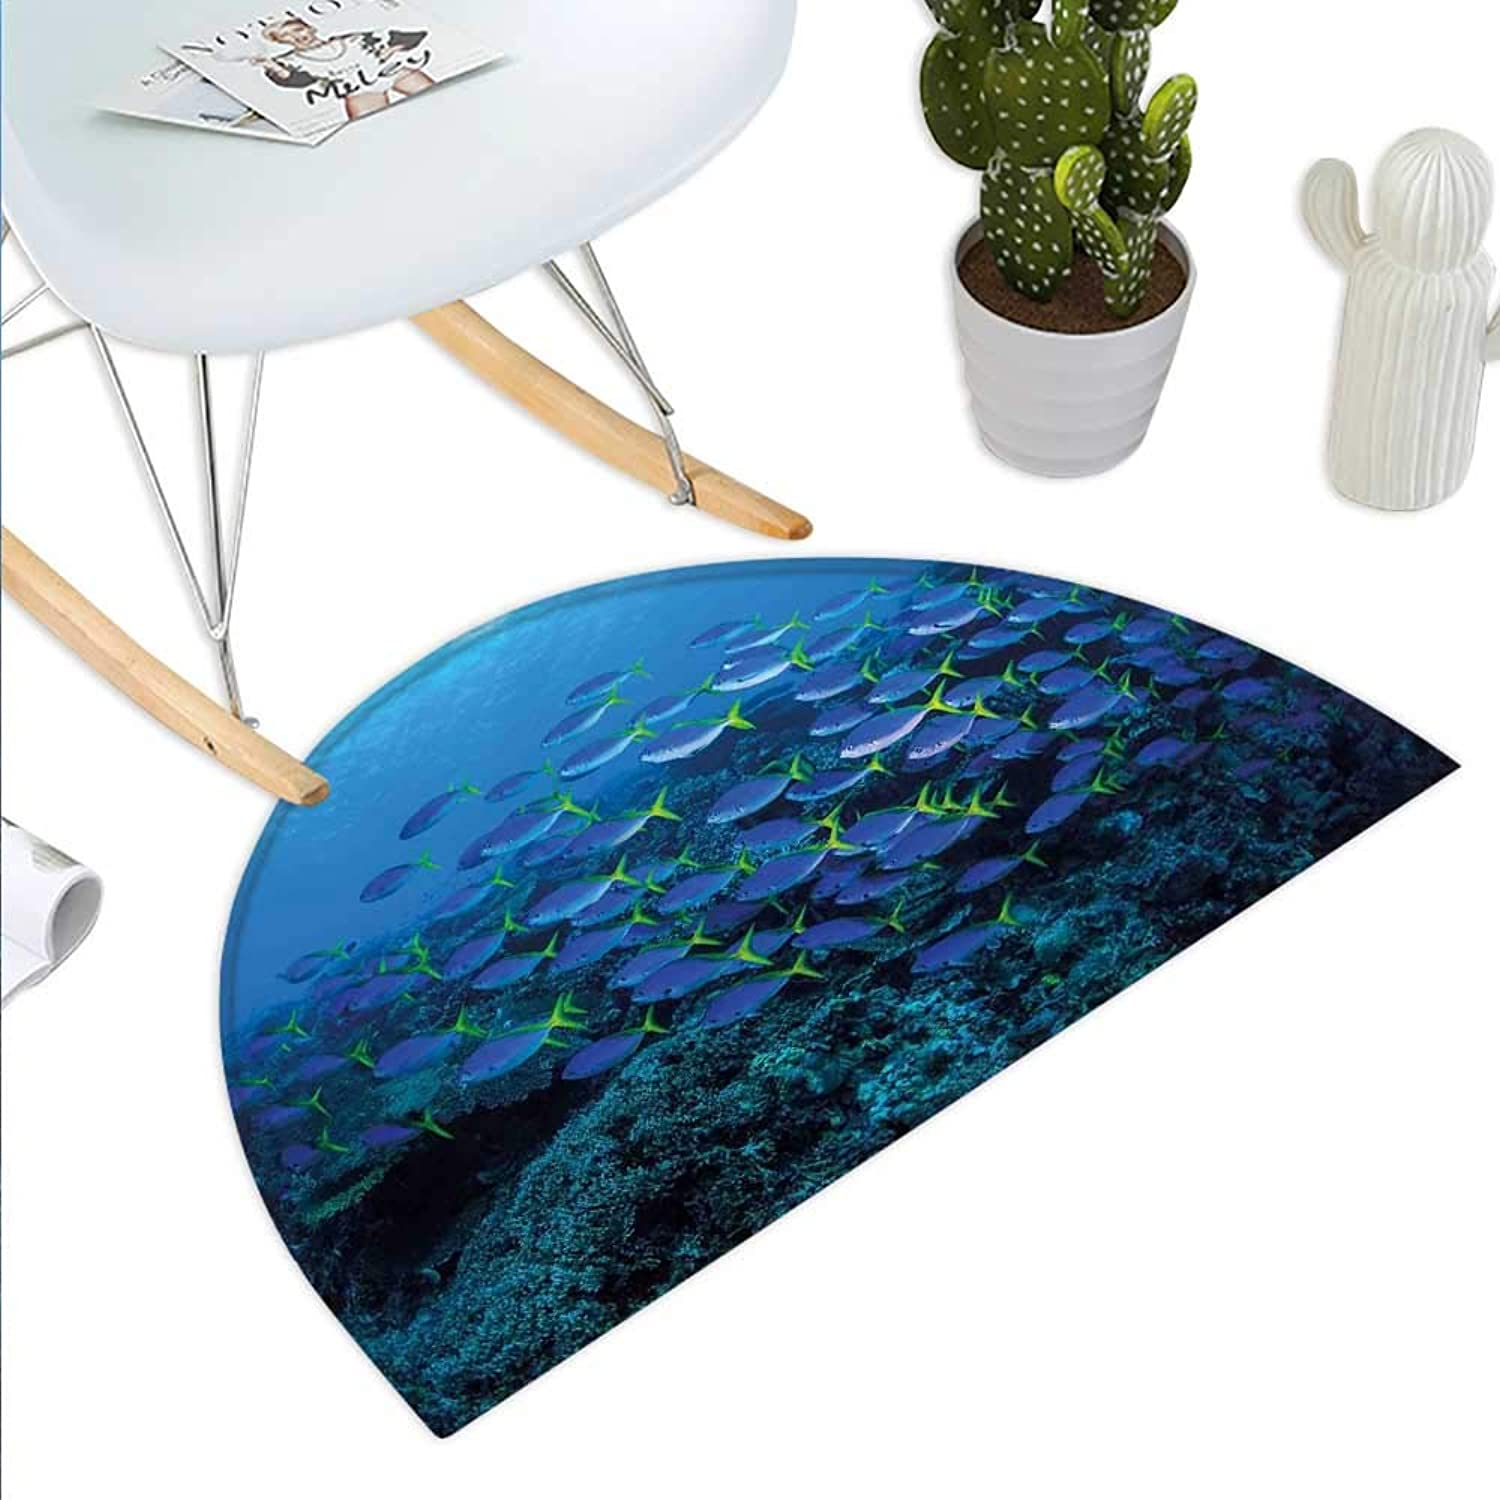 Fish Semicircle Doormat Shoal of Fish on Stony Plant Animals in Submarine and Sun Beams on The Surface Image Halfmoon doormats H 31.5  xD 47.2  Multicolor